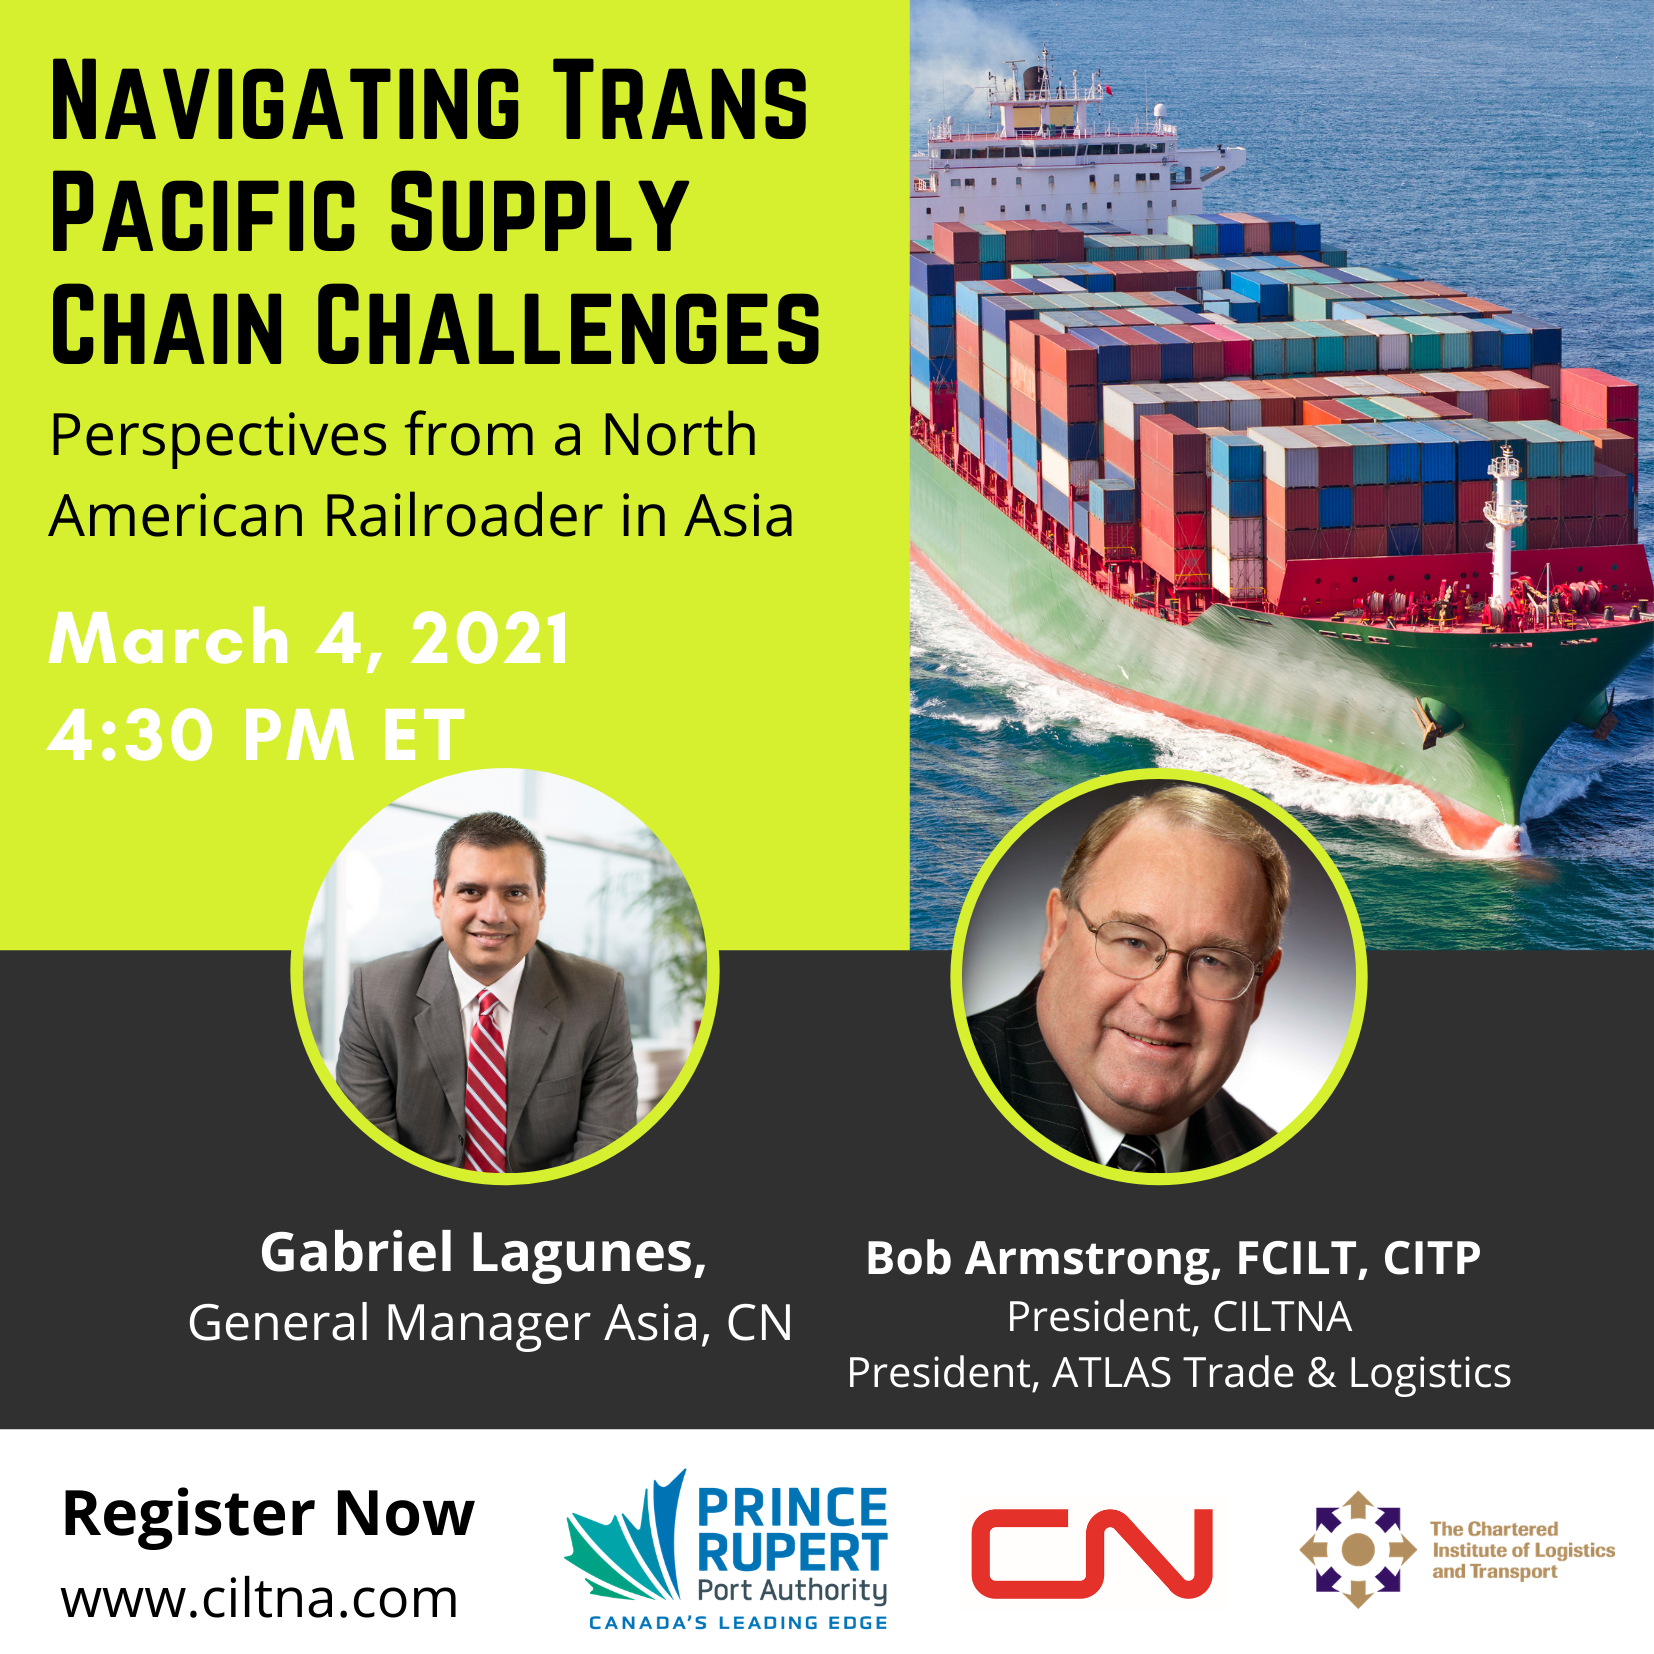 Navigating Trans-Pacific Supply Chain Challenges: Perspectives from a North American Railroader in Asia - sponsored by Prince Rupert Port Authority